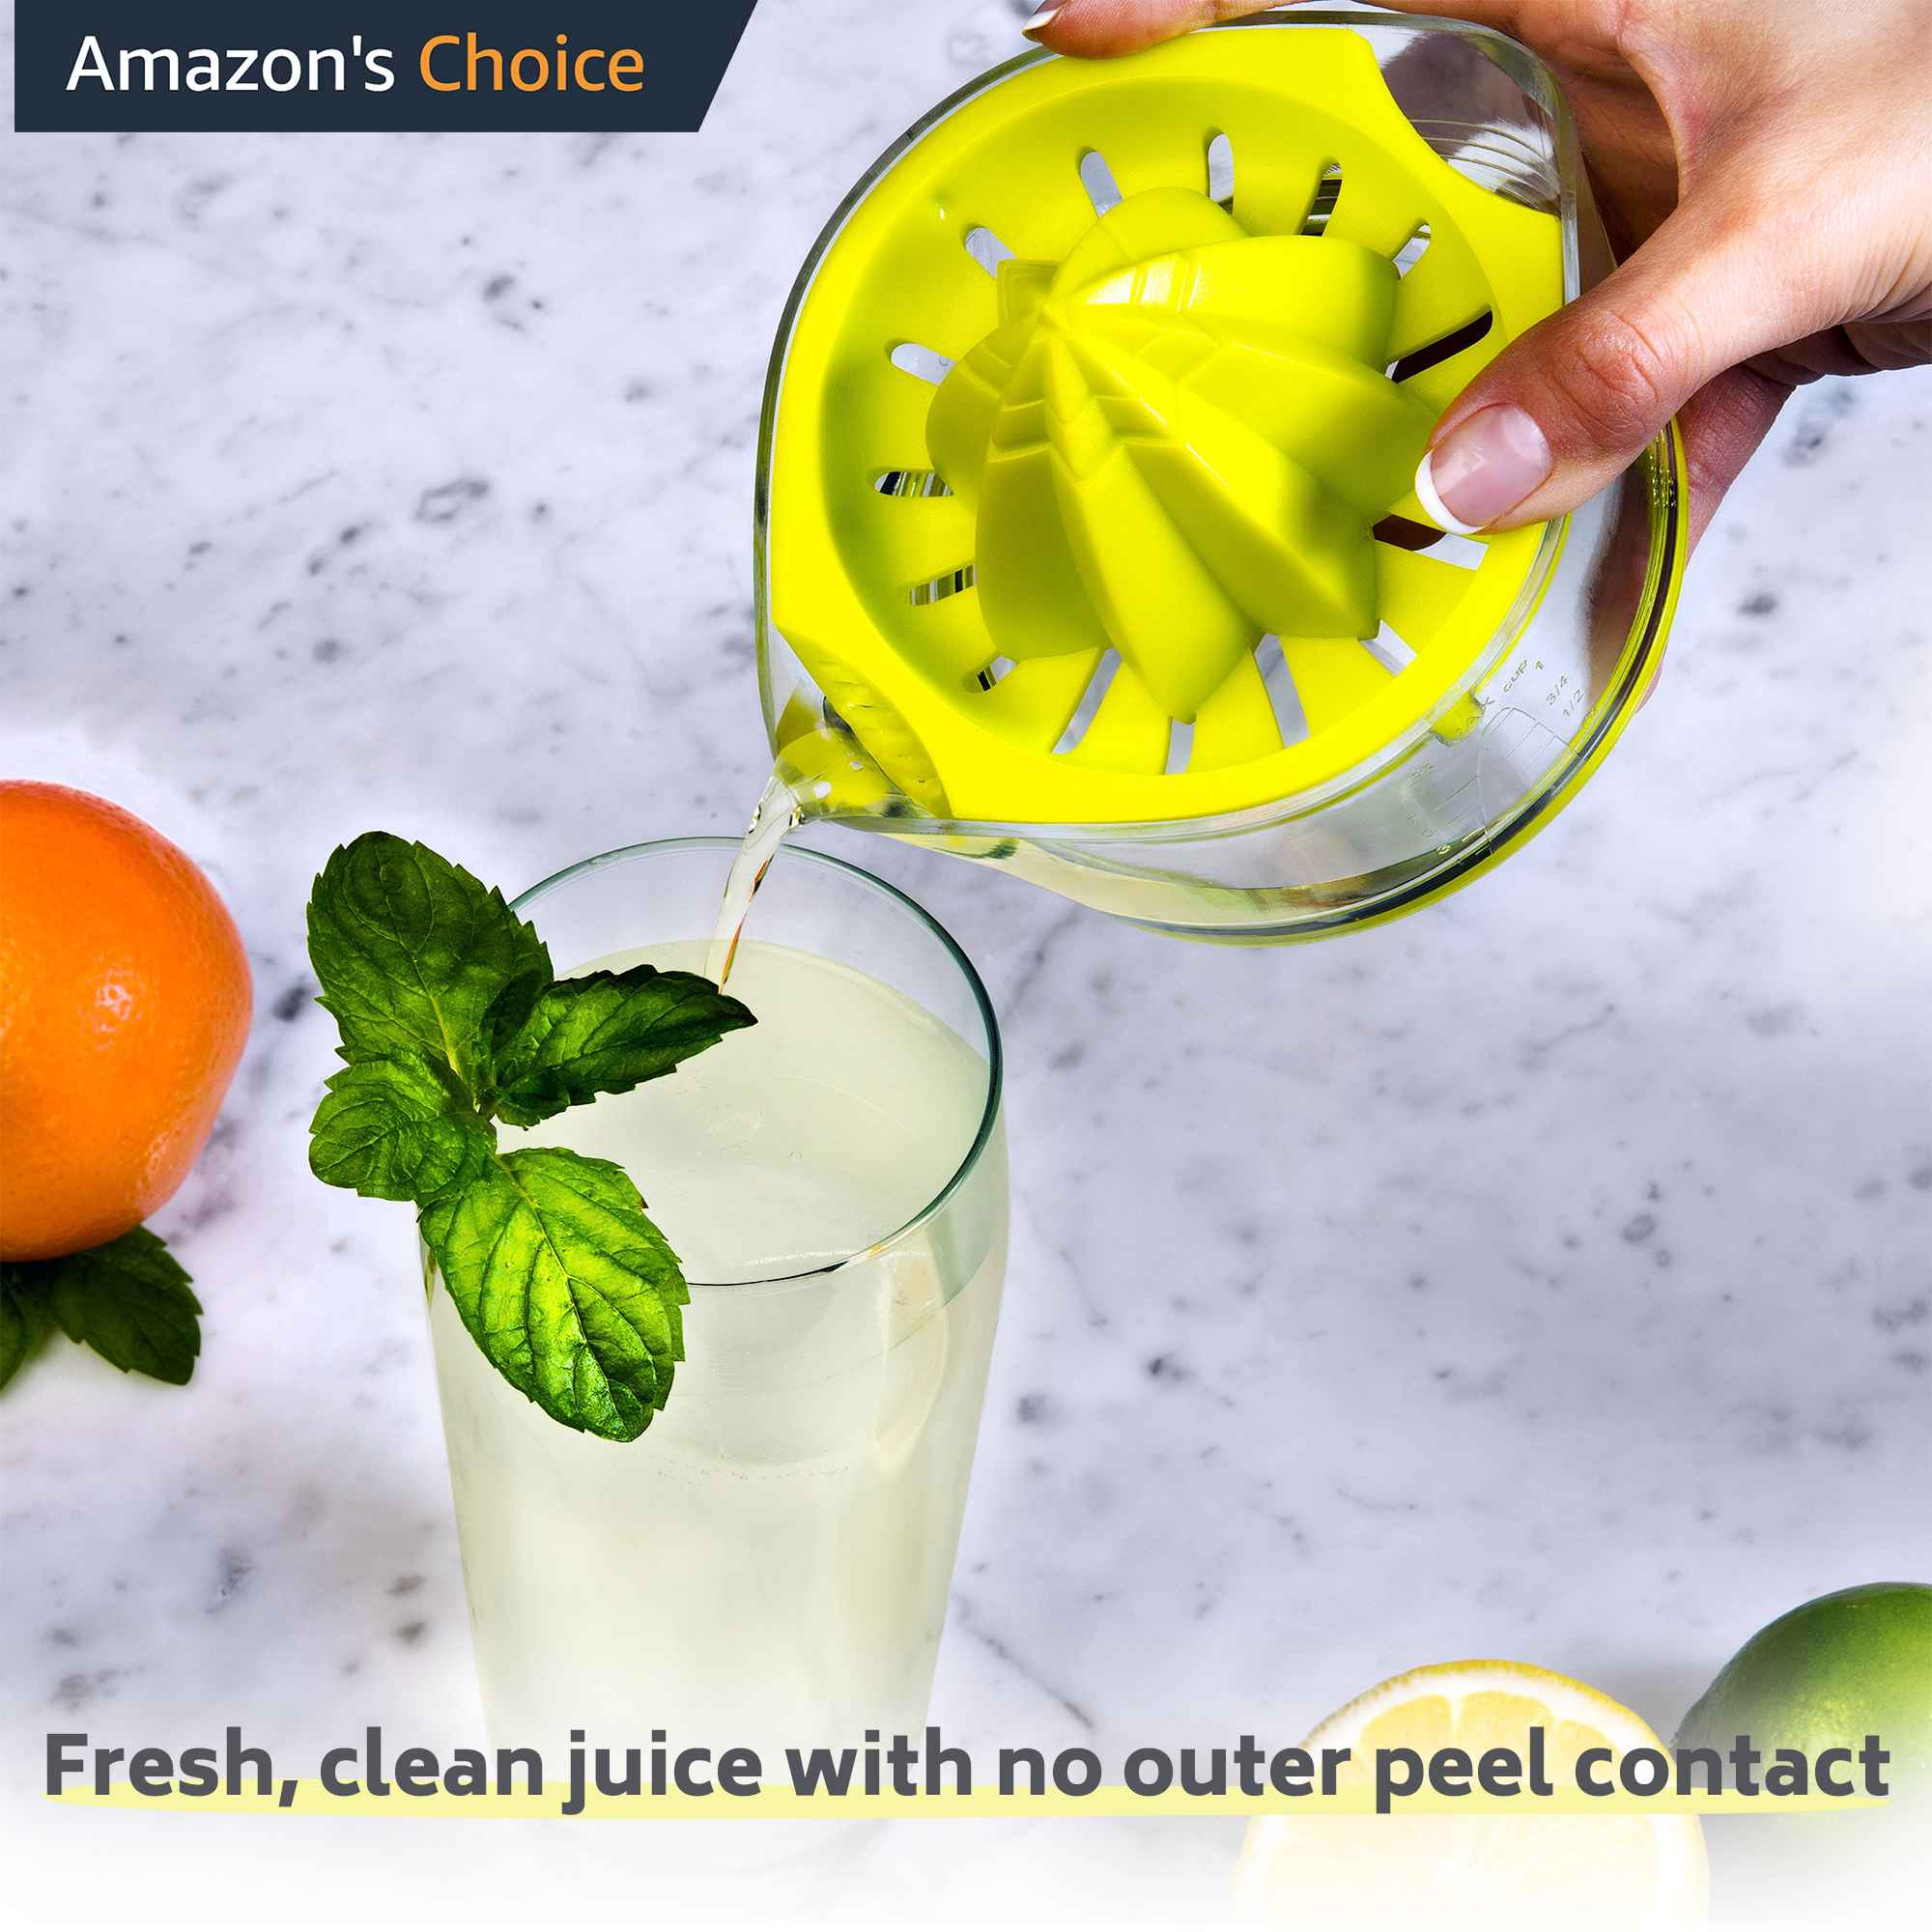 ez citrus juicer - ultra efficient lemon juicer, easy manual lemon squeezer juicer hand held